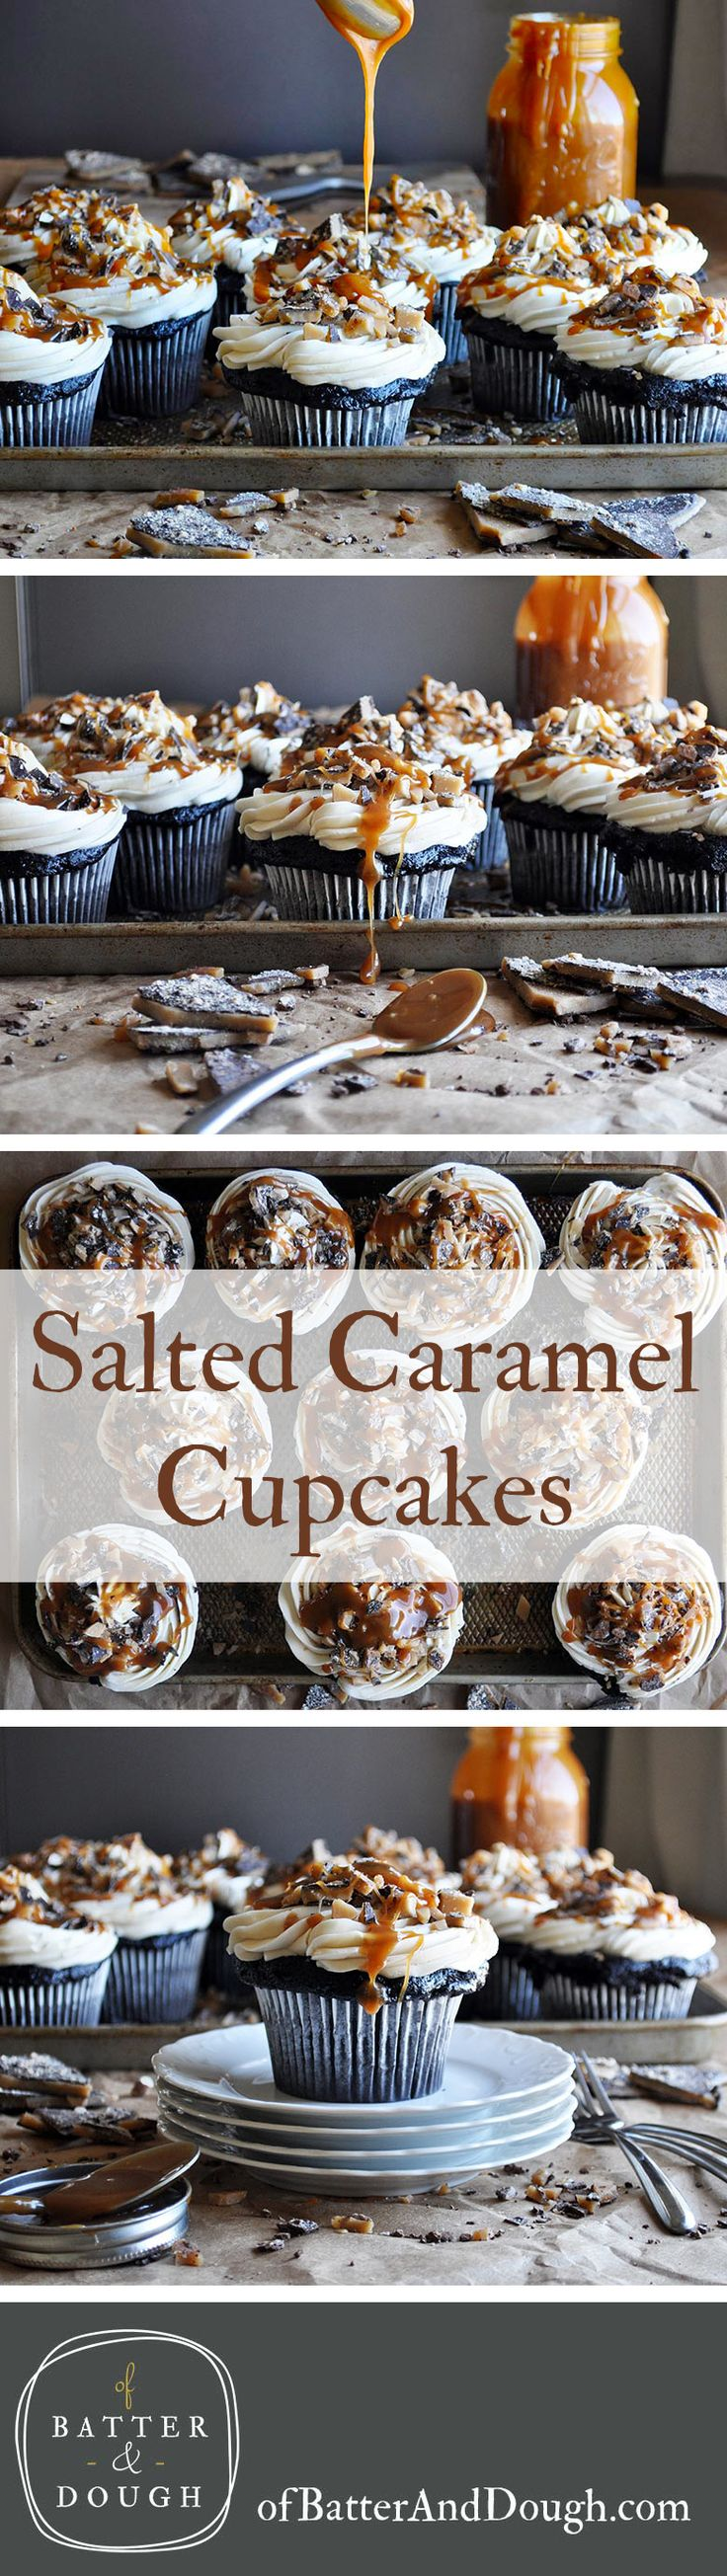 Salted Caramel Cupcakes. Rich, ultra moist chocolate cake is frosted with salted caramel Italian meringue buttercream, sprinkled with chocolate covered almond toffee and drizzled with salted caramel sauce.